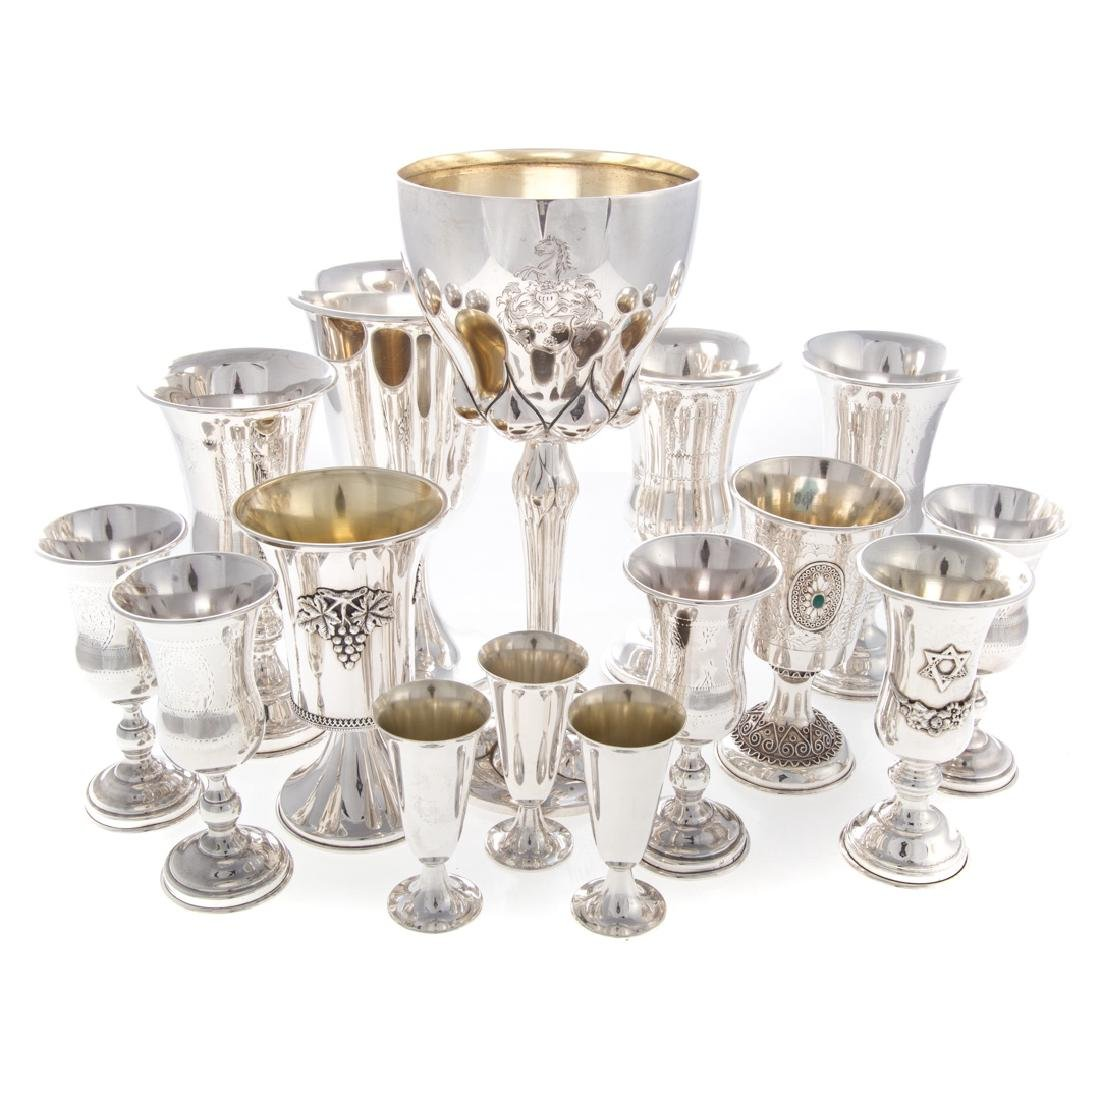 Silver Kiddush cups, wine goblets & cordials